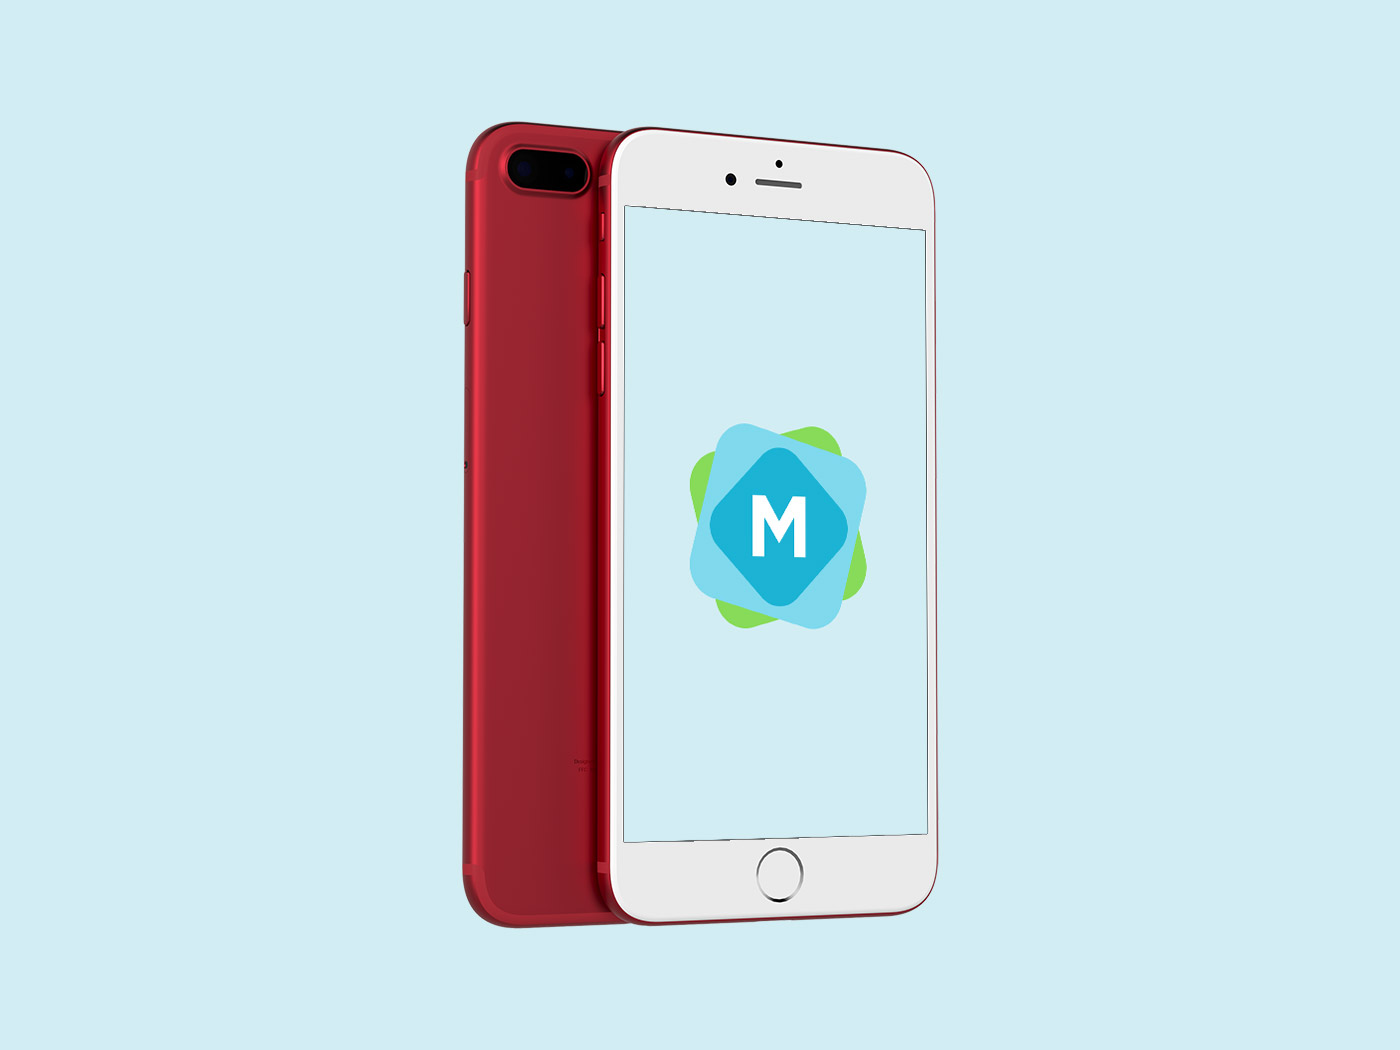 Product Red Iphone Mockup Mockup Templates